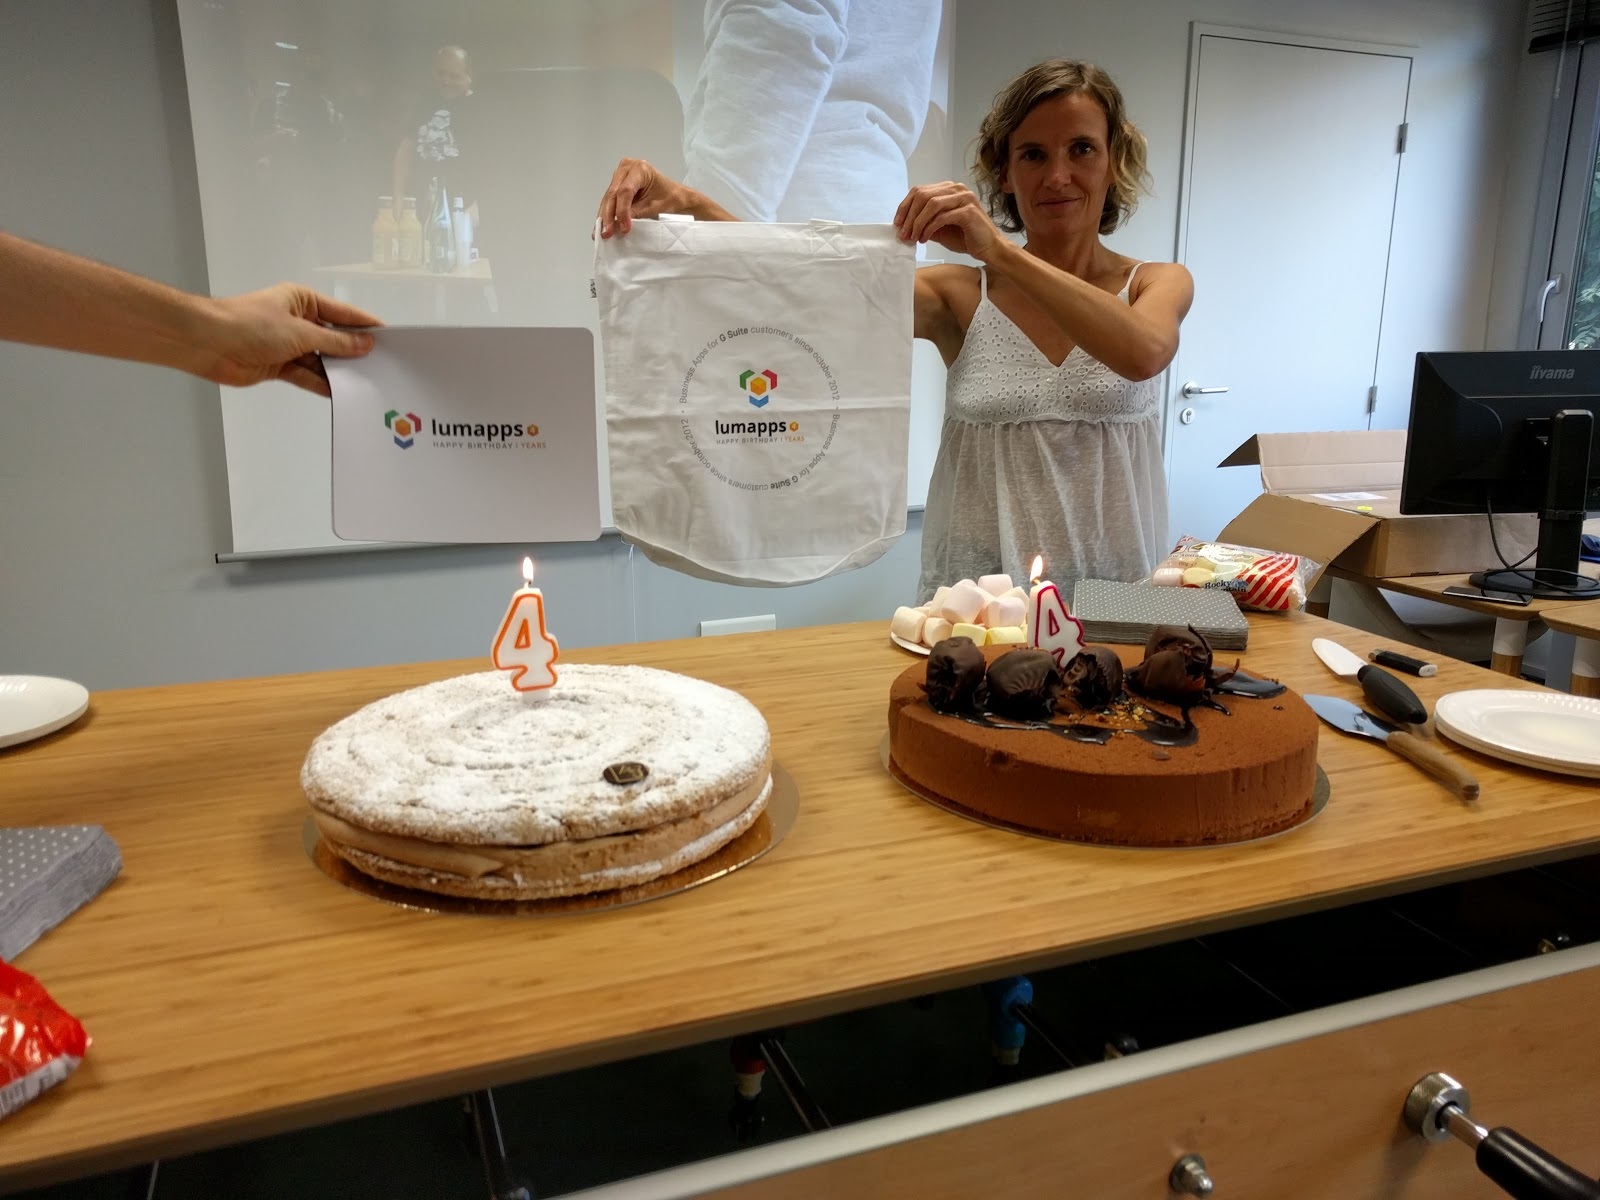 Cakes and gifts for 4 years of LumApps